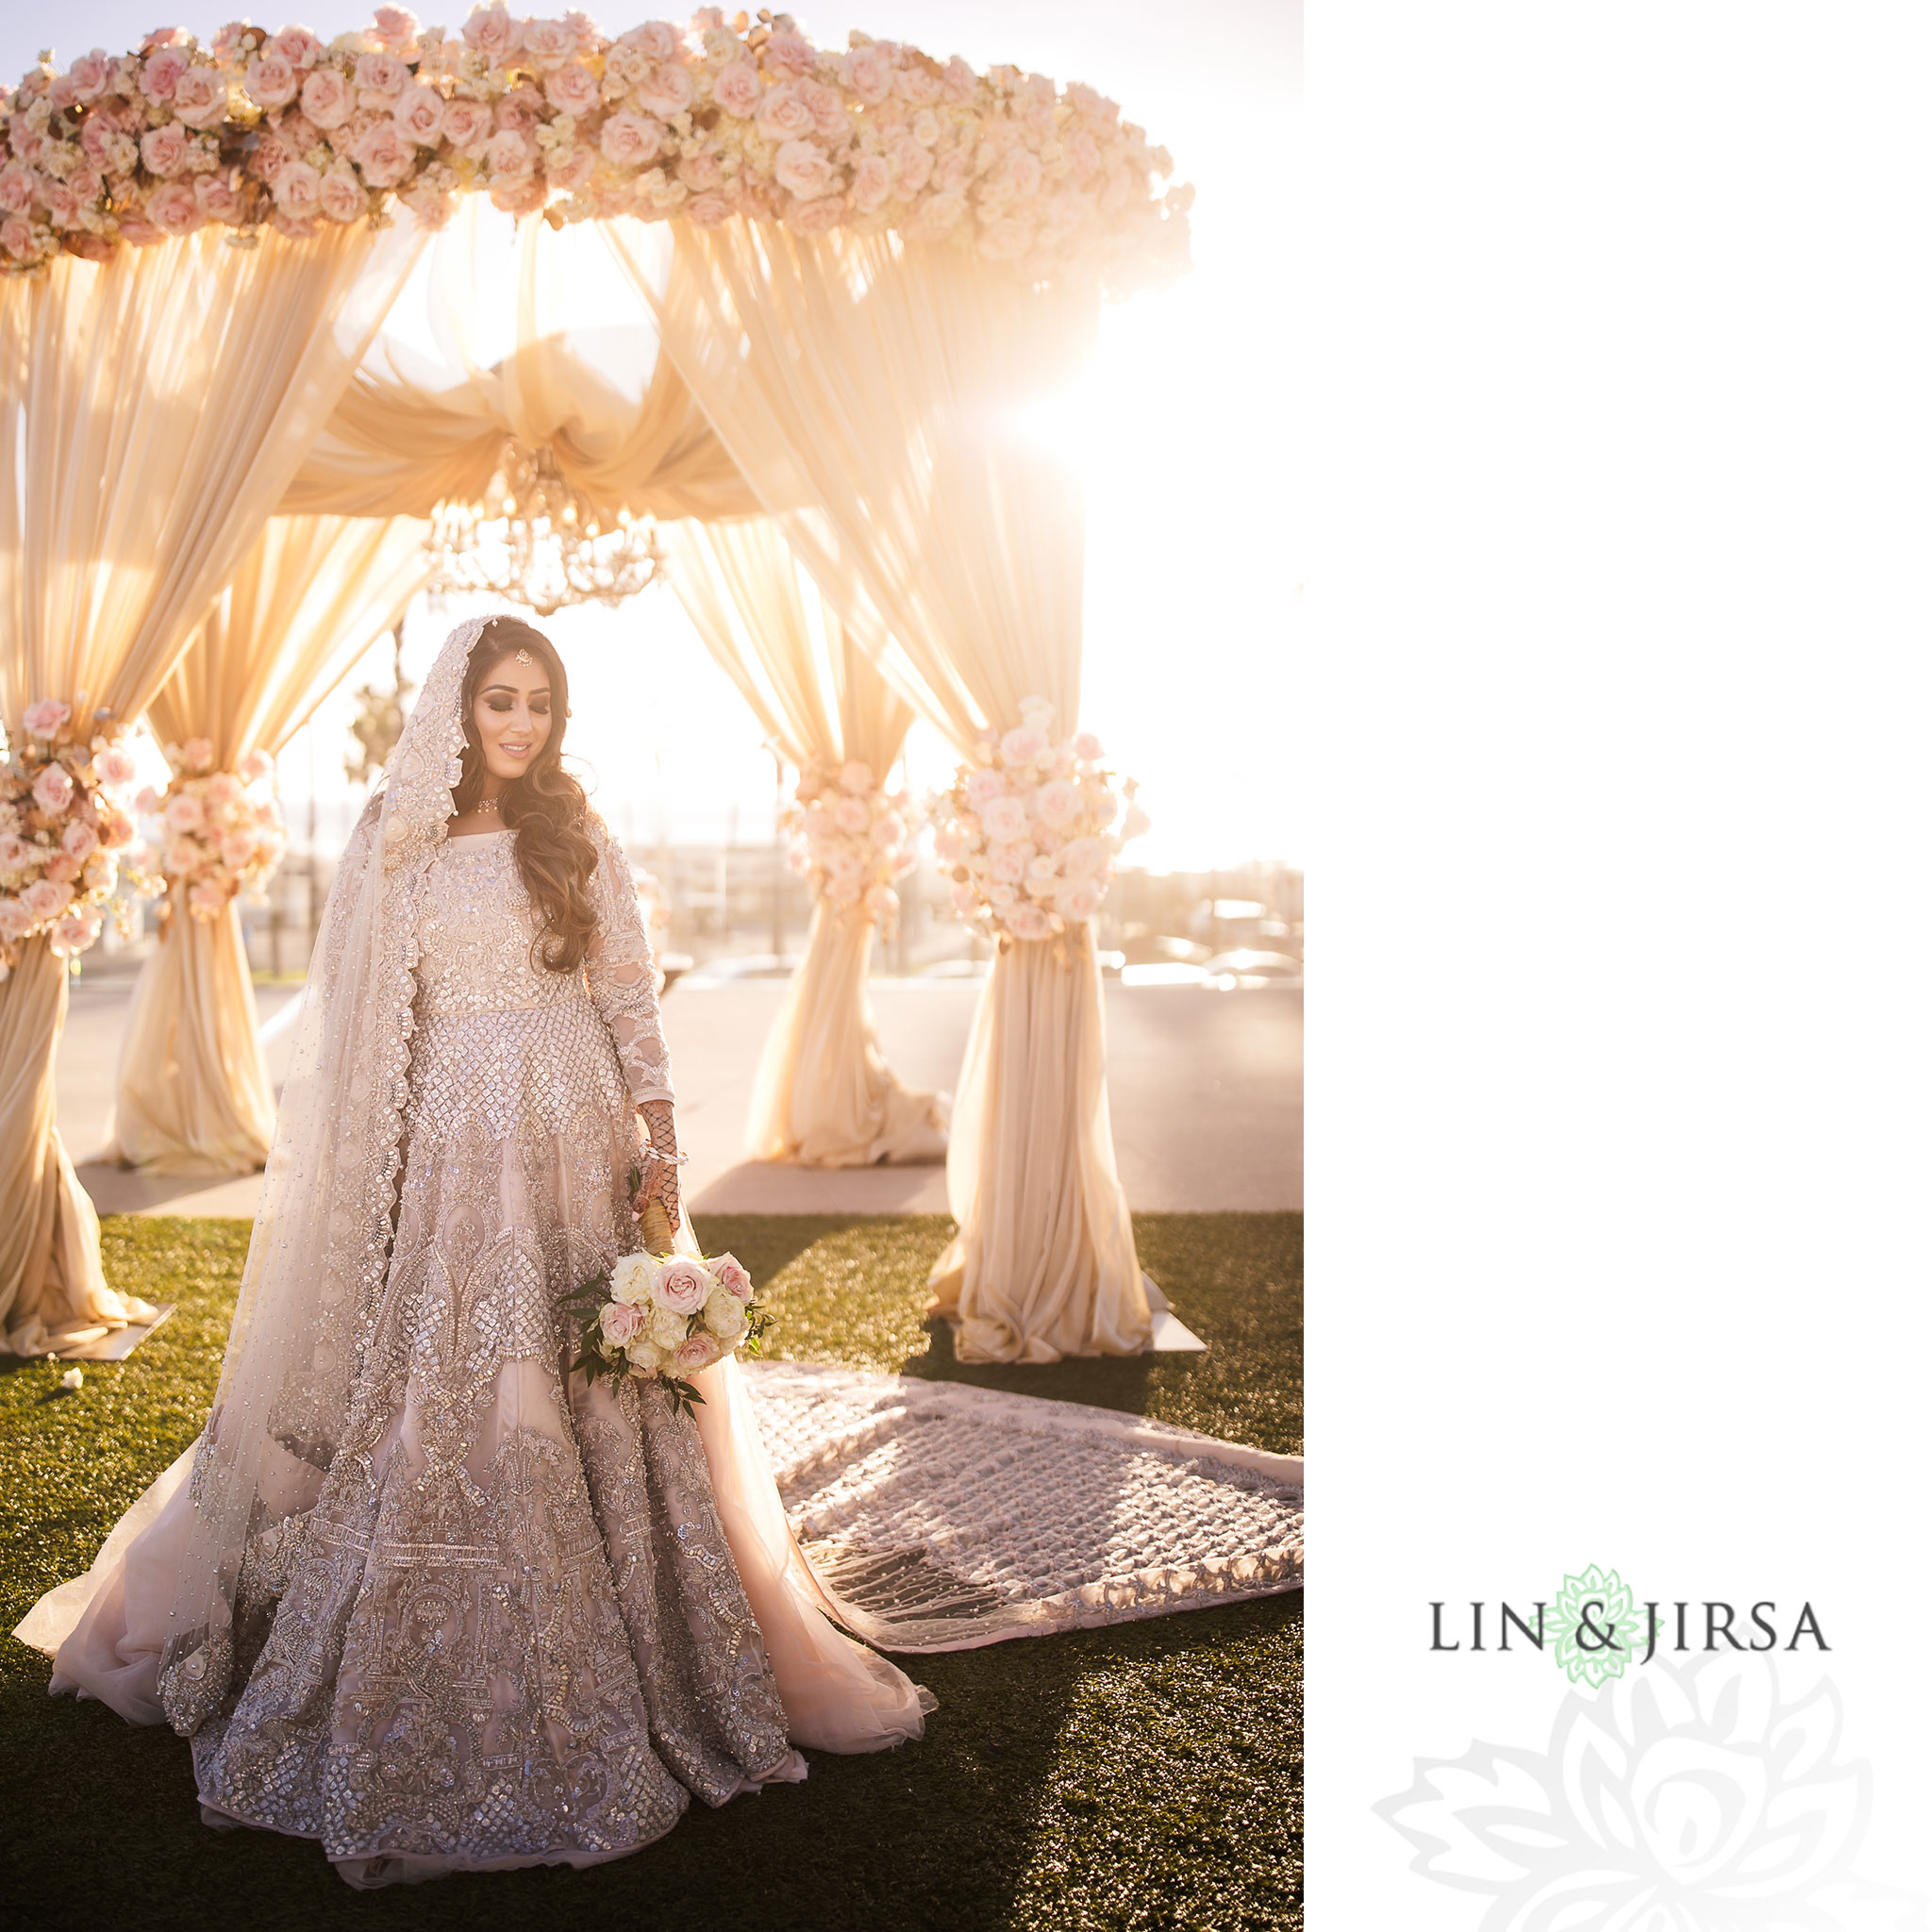 07 huntington beach pakistani bride erumkhan dress wedding photography